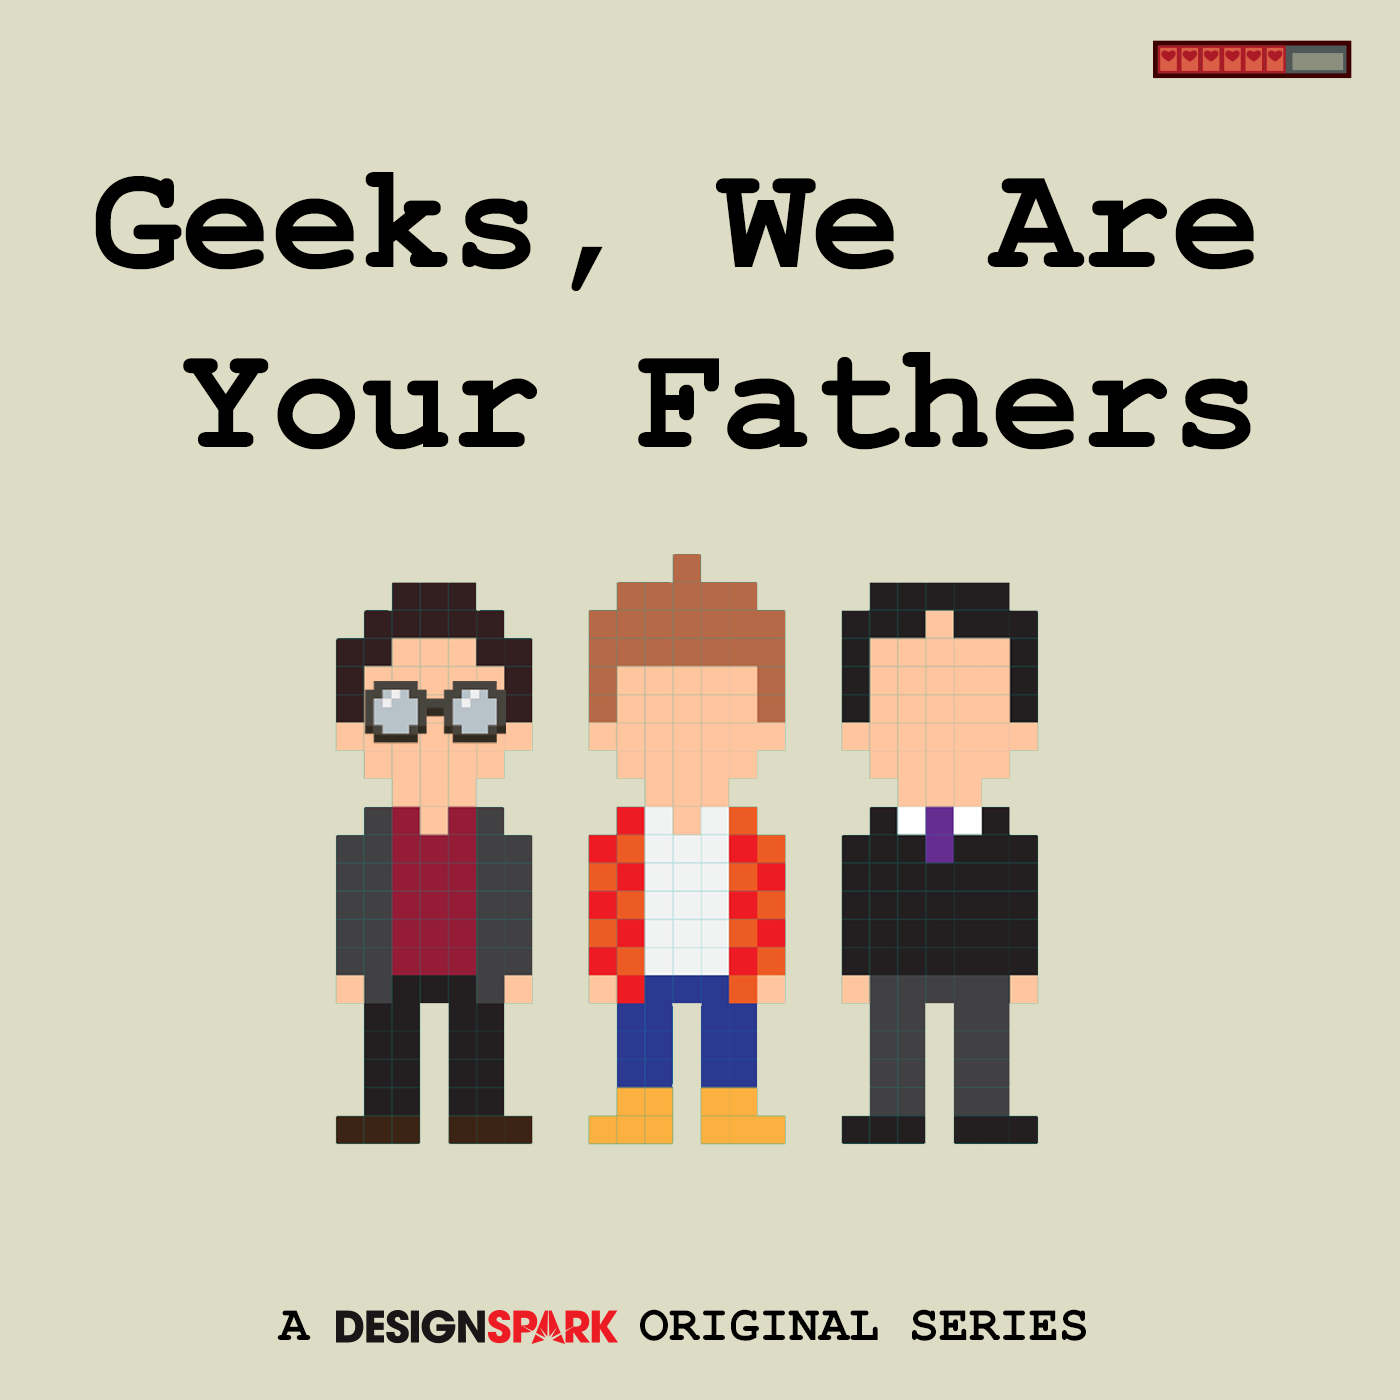 Geeks We Are Your Fathers